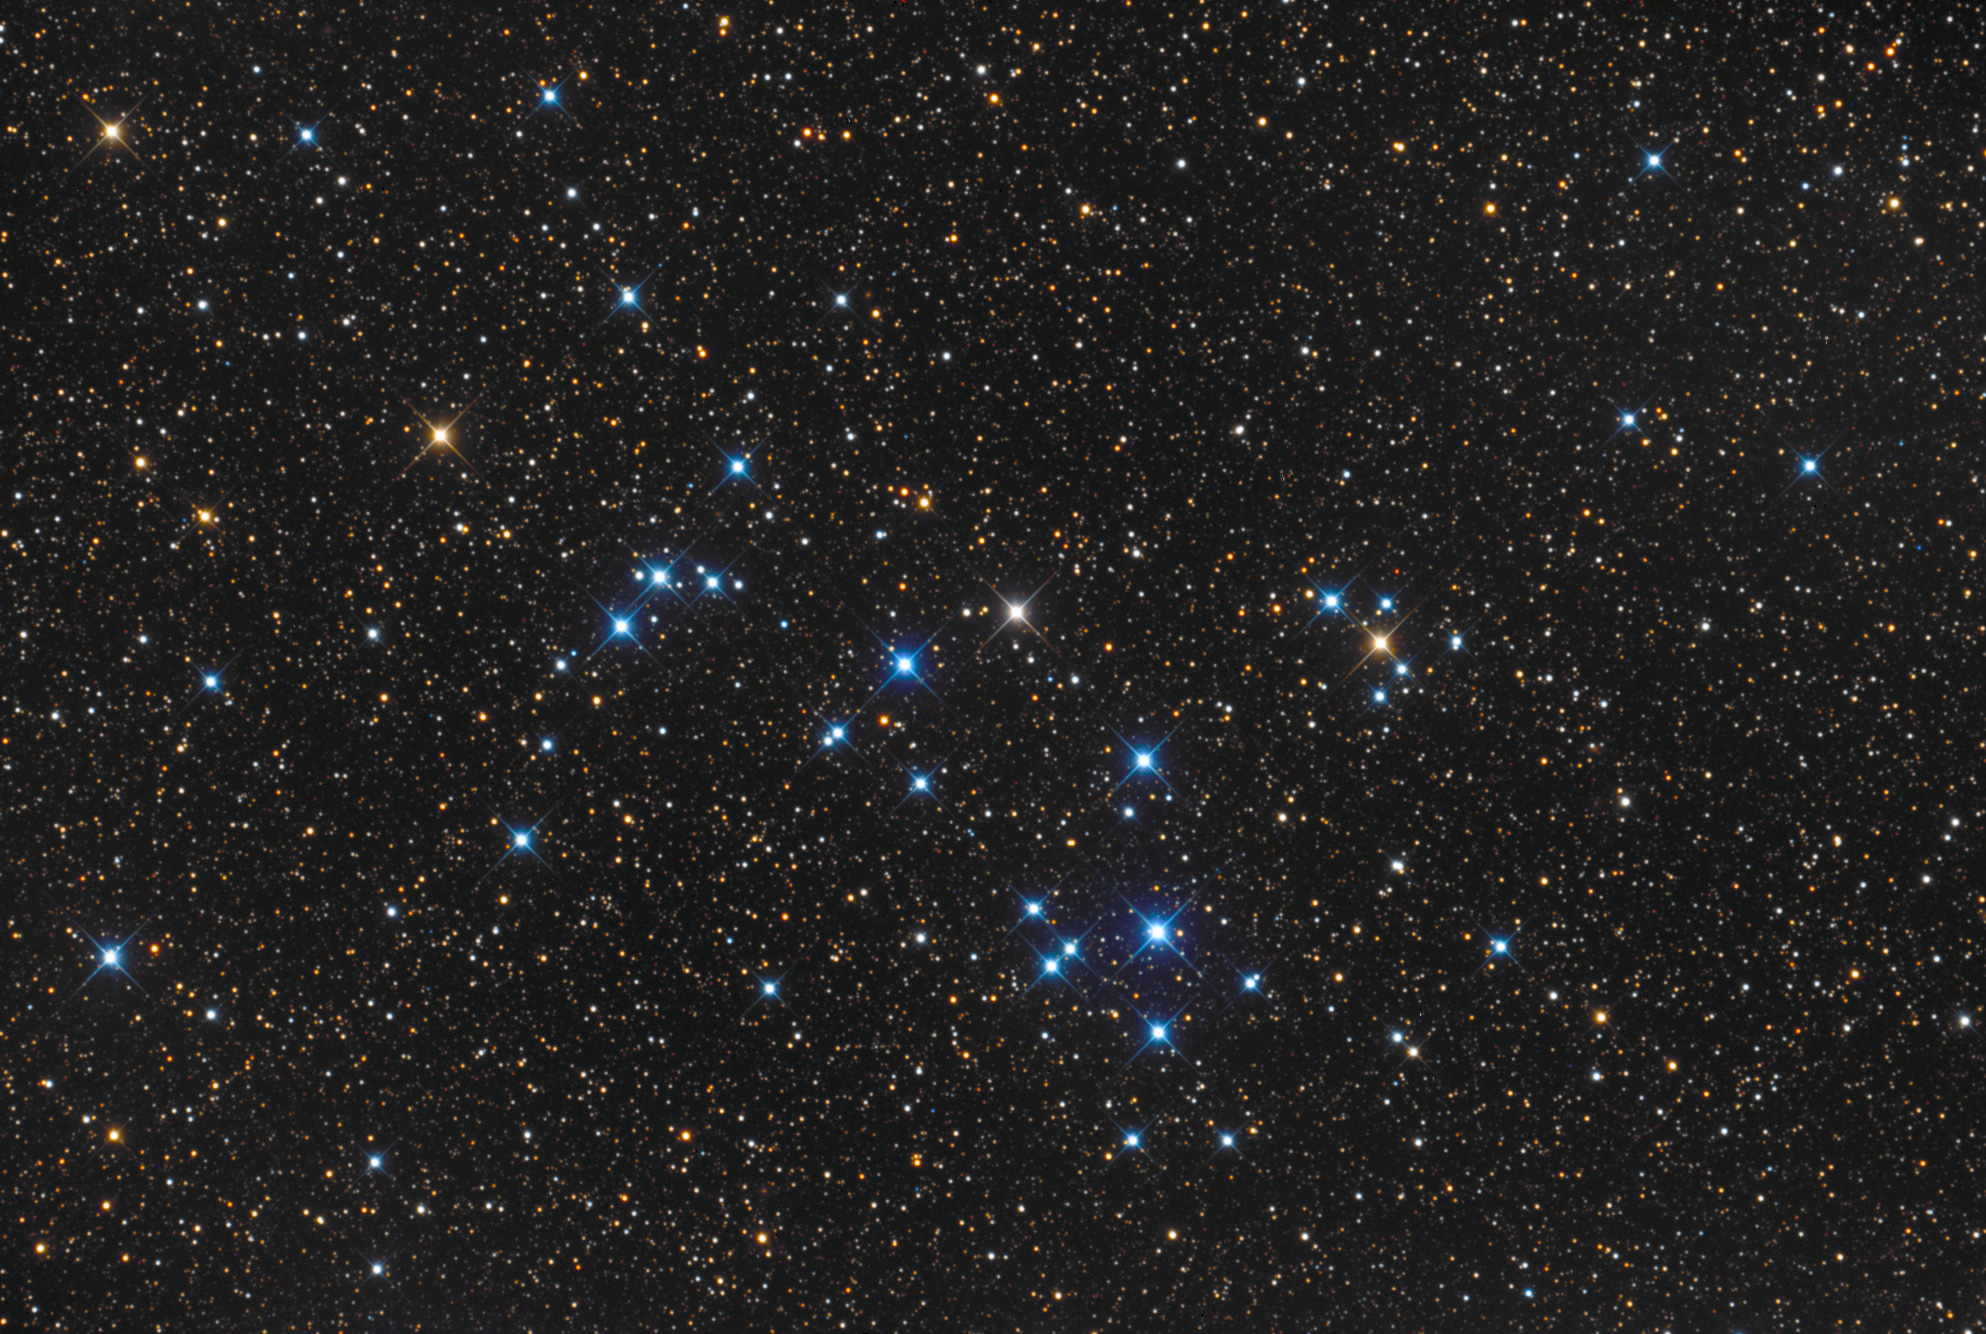 Dazzling Star Cluster Shines in Stargazer's Photo